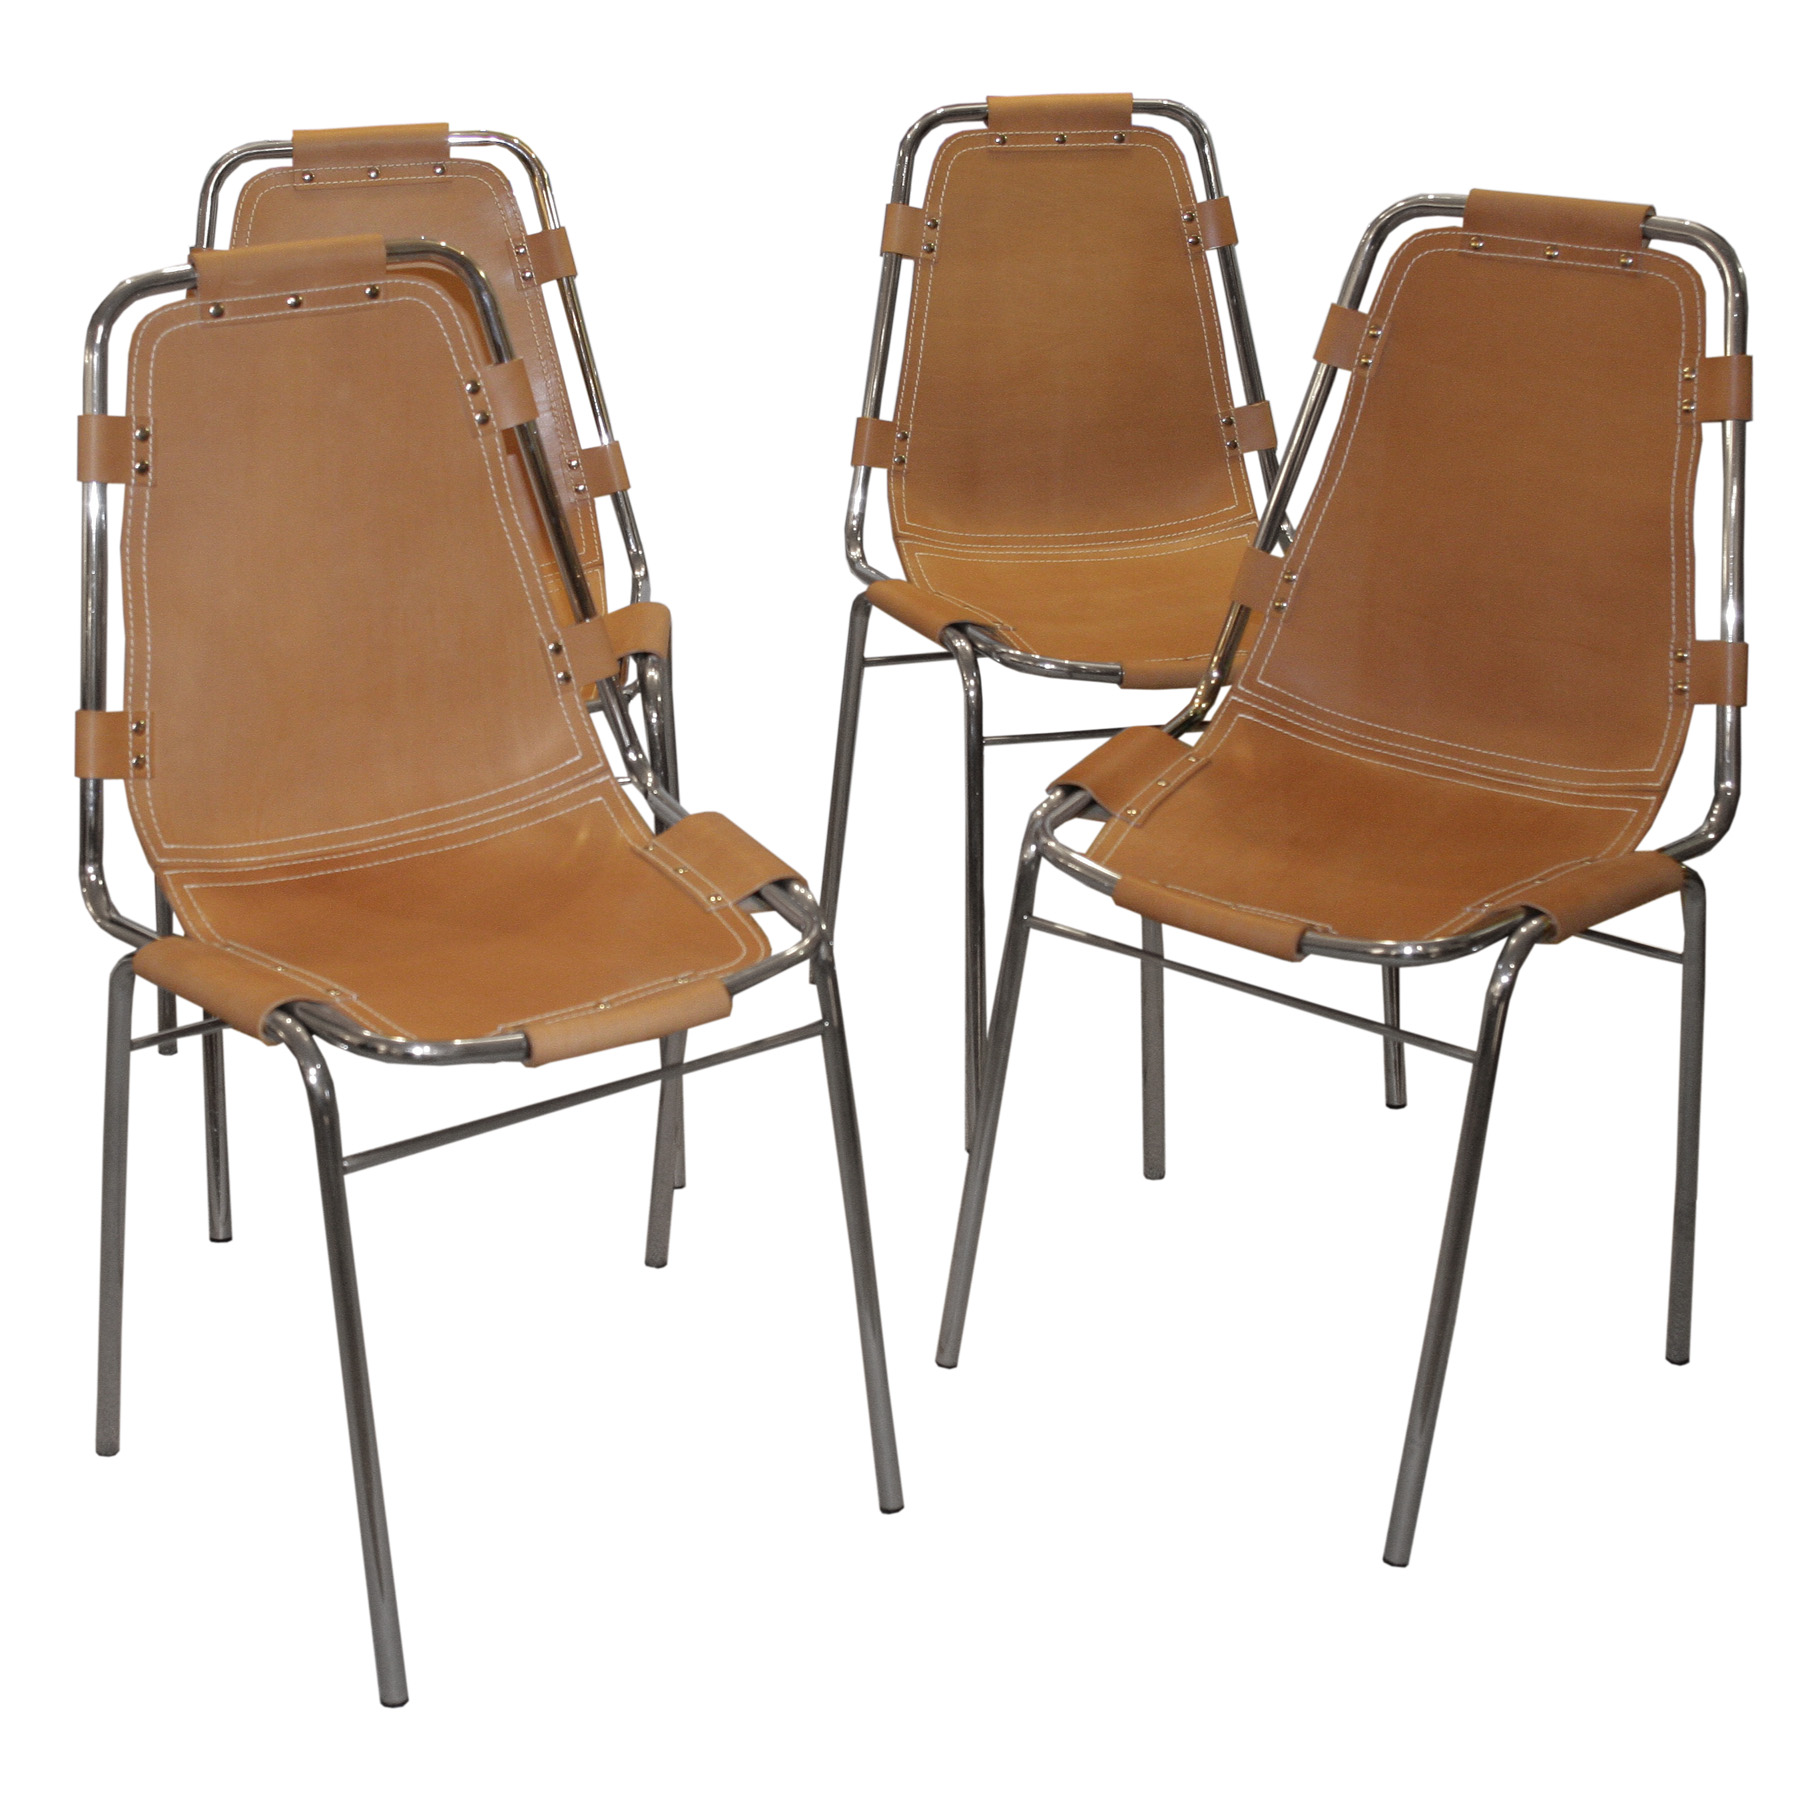 A Set Of 4 Charlotte Perriand Chairs Modernism